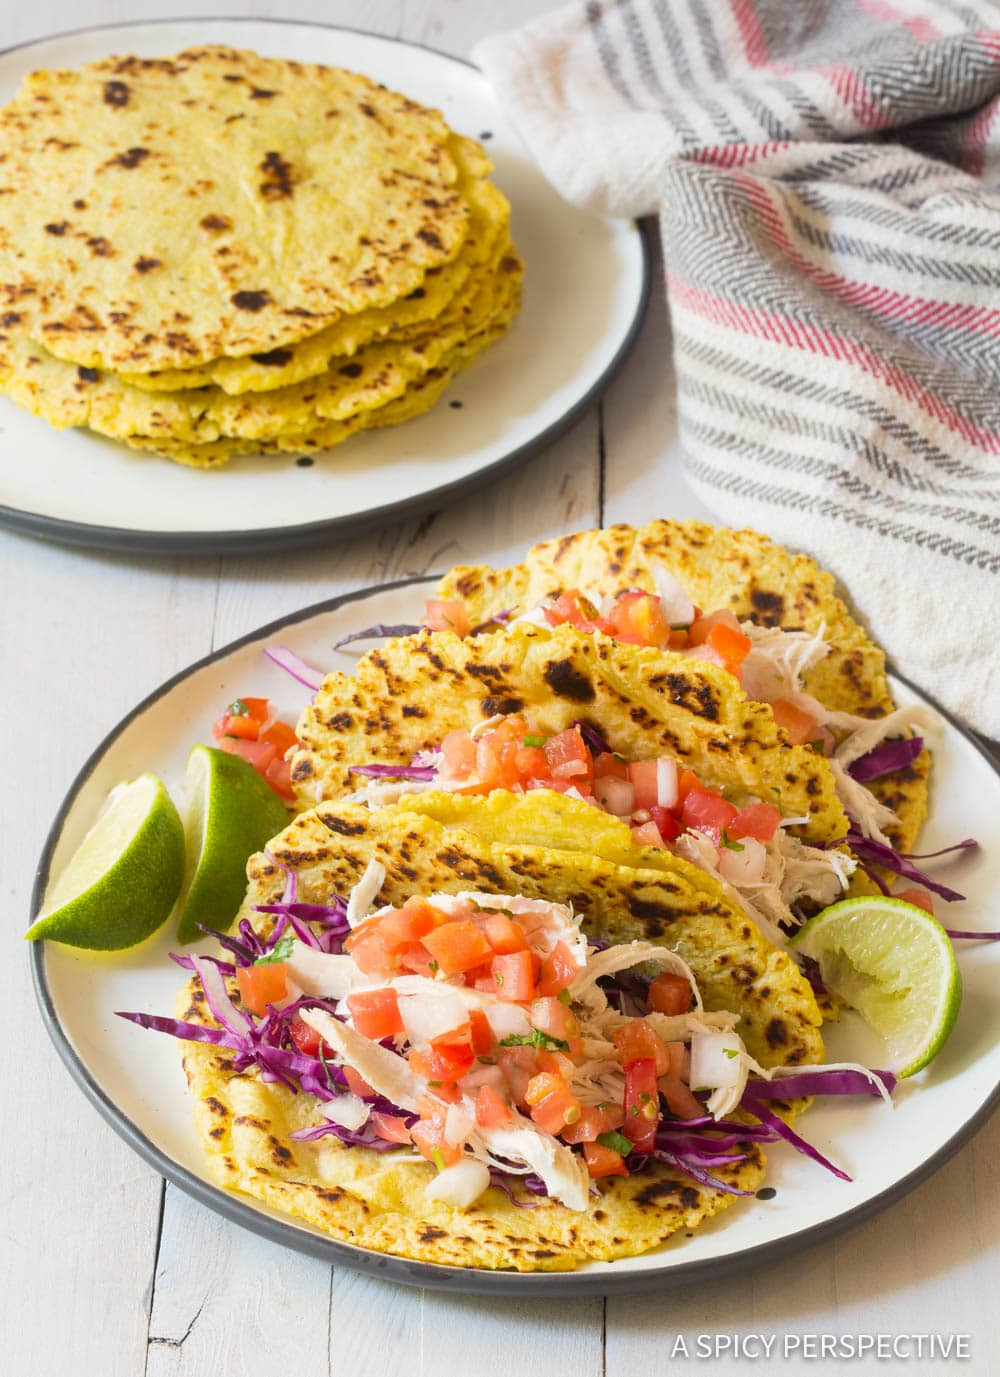 Awesome! Magic Plantain Tortillas Recipe #ASpicyPerspective #Paleo #GlutenFree #GrainFree #DairyFree